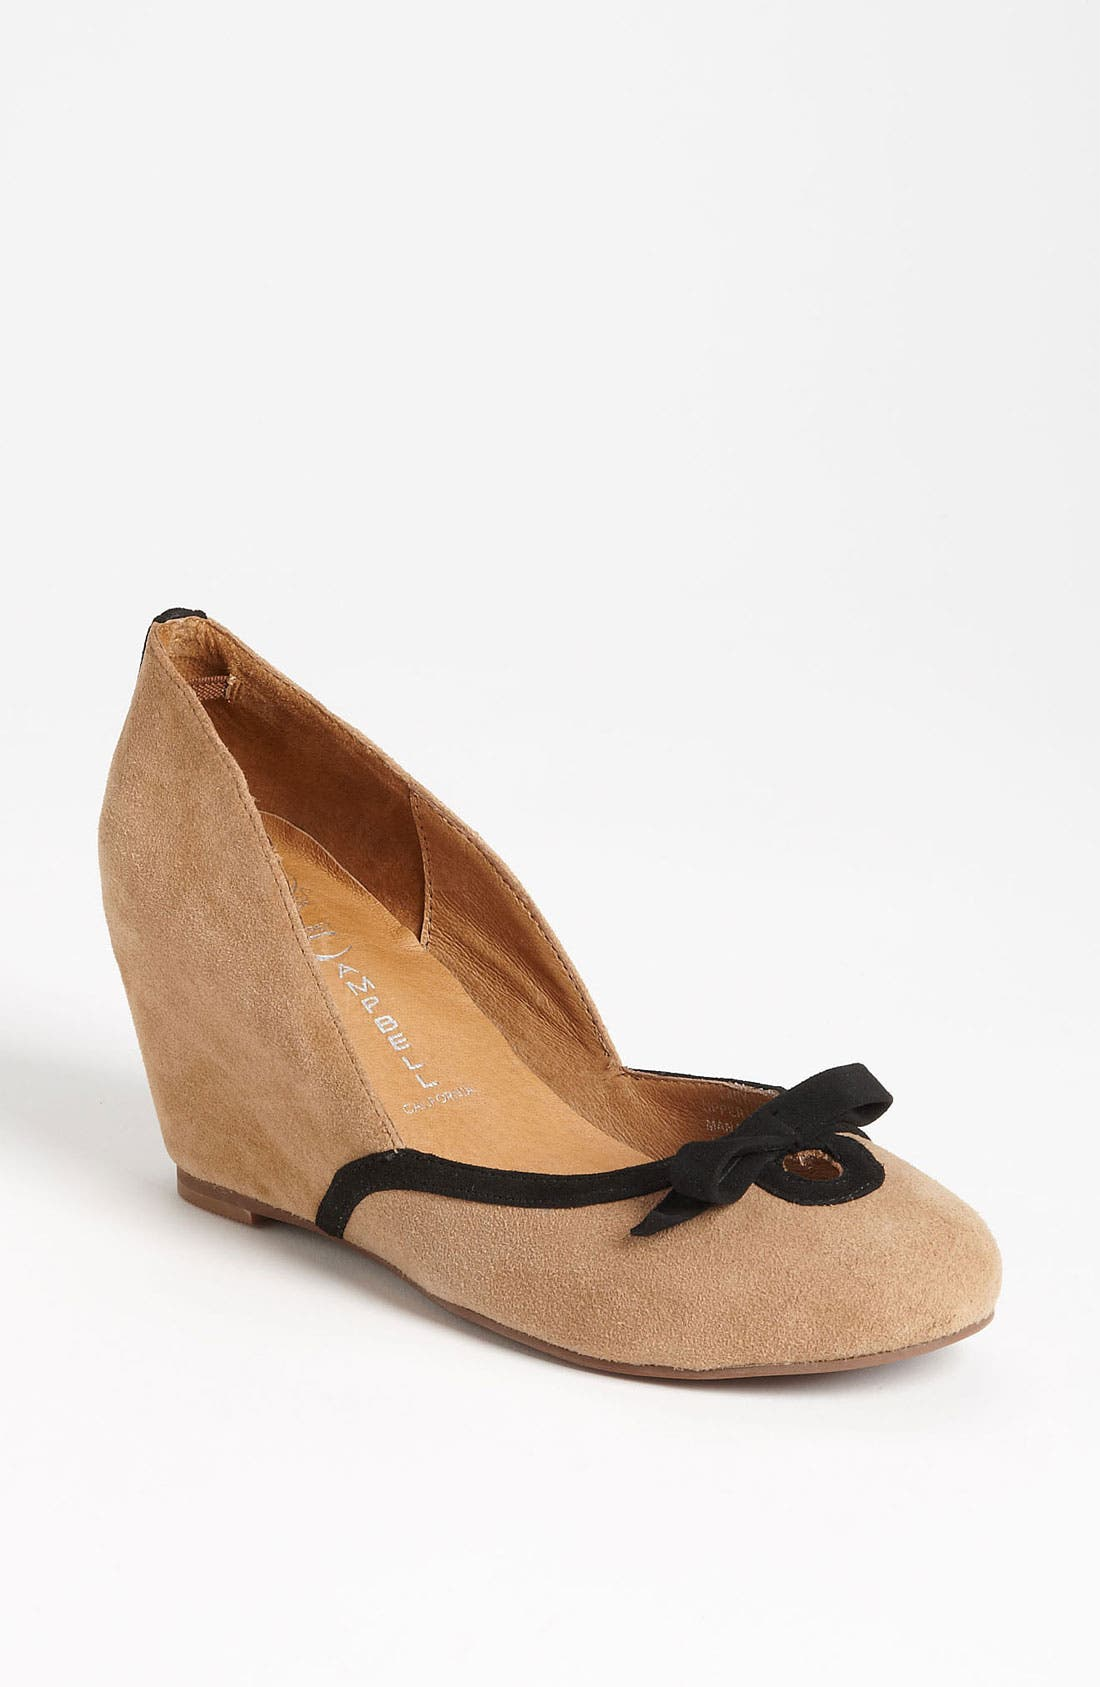 Alternate Image 1 Selected - Jeffrey Campbell 'Ladylike' Wedge Pump